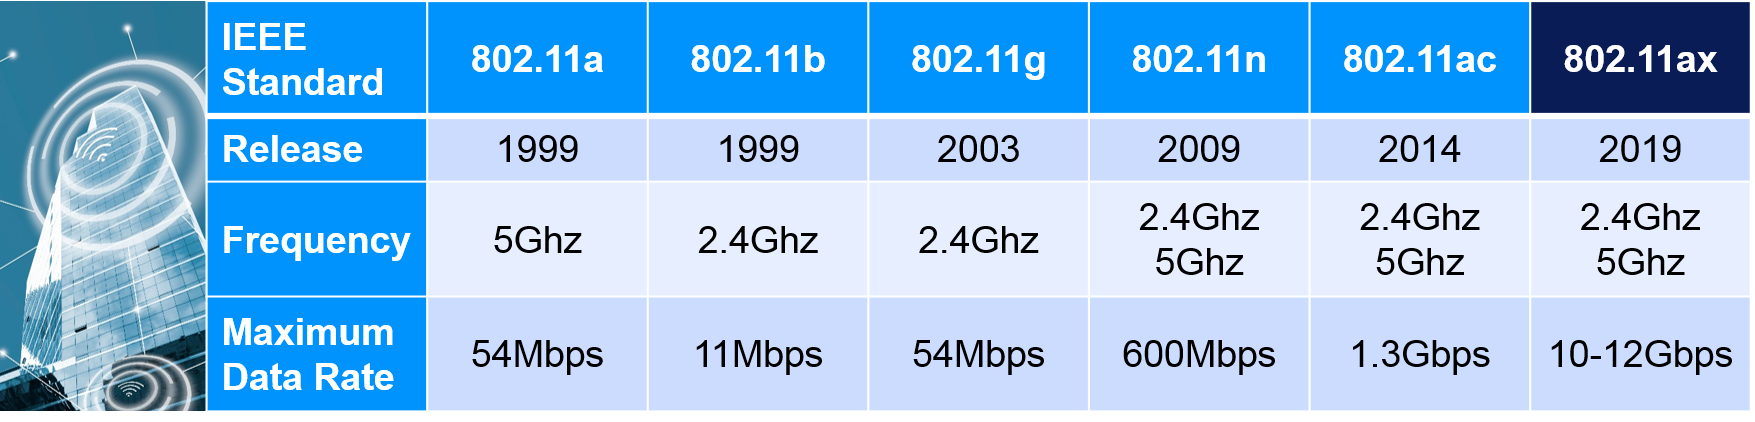 Wi-Fi evolution overview by release date, frequency and maximum data rate